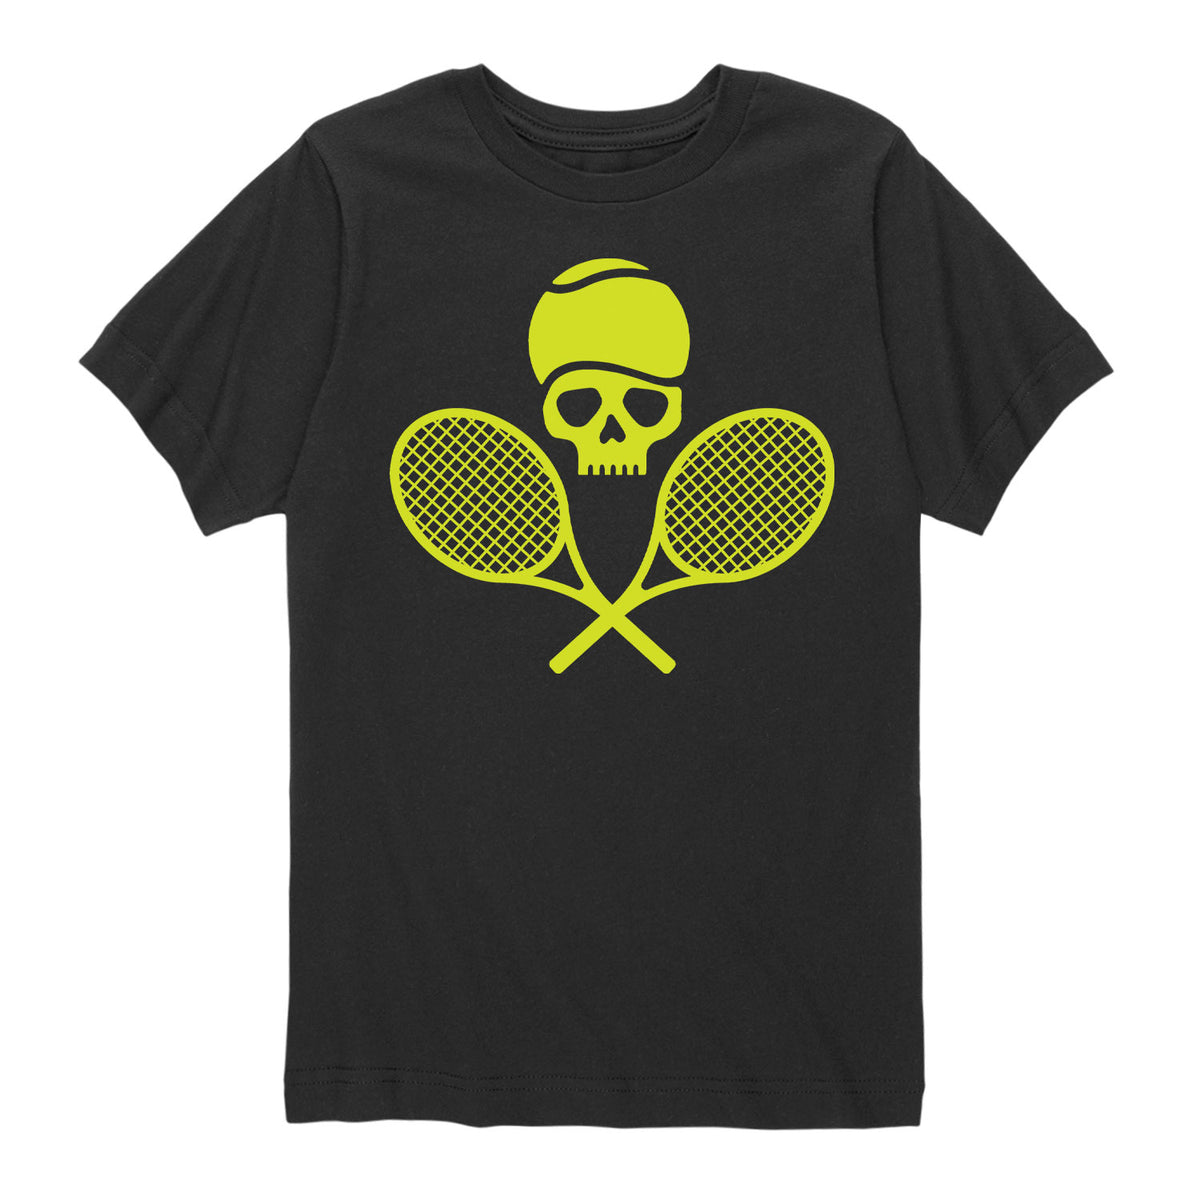 Tennis Skull - Youth & Toddler Short Sleeve T-Shirt